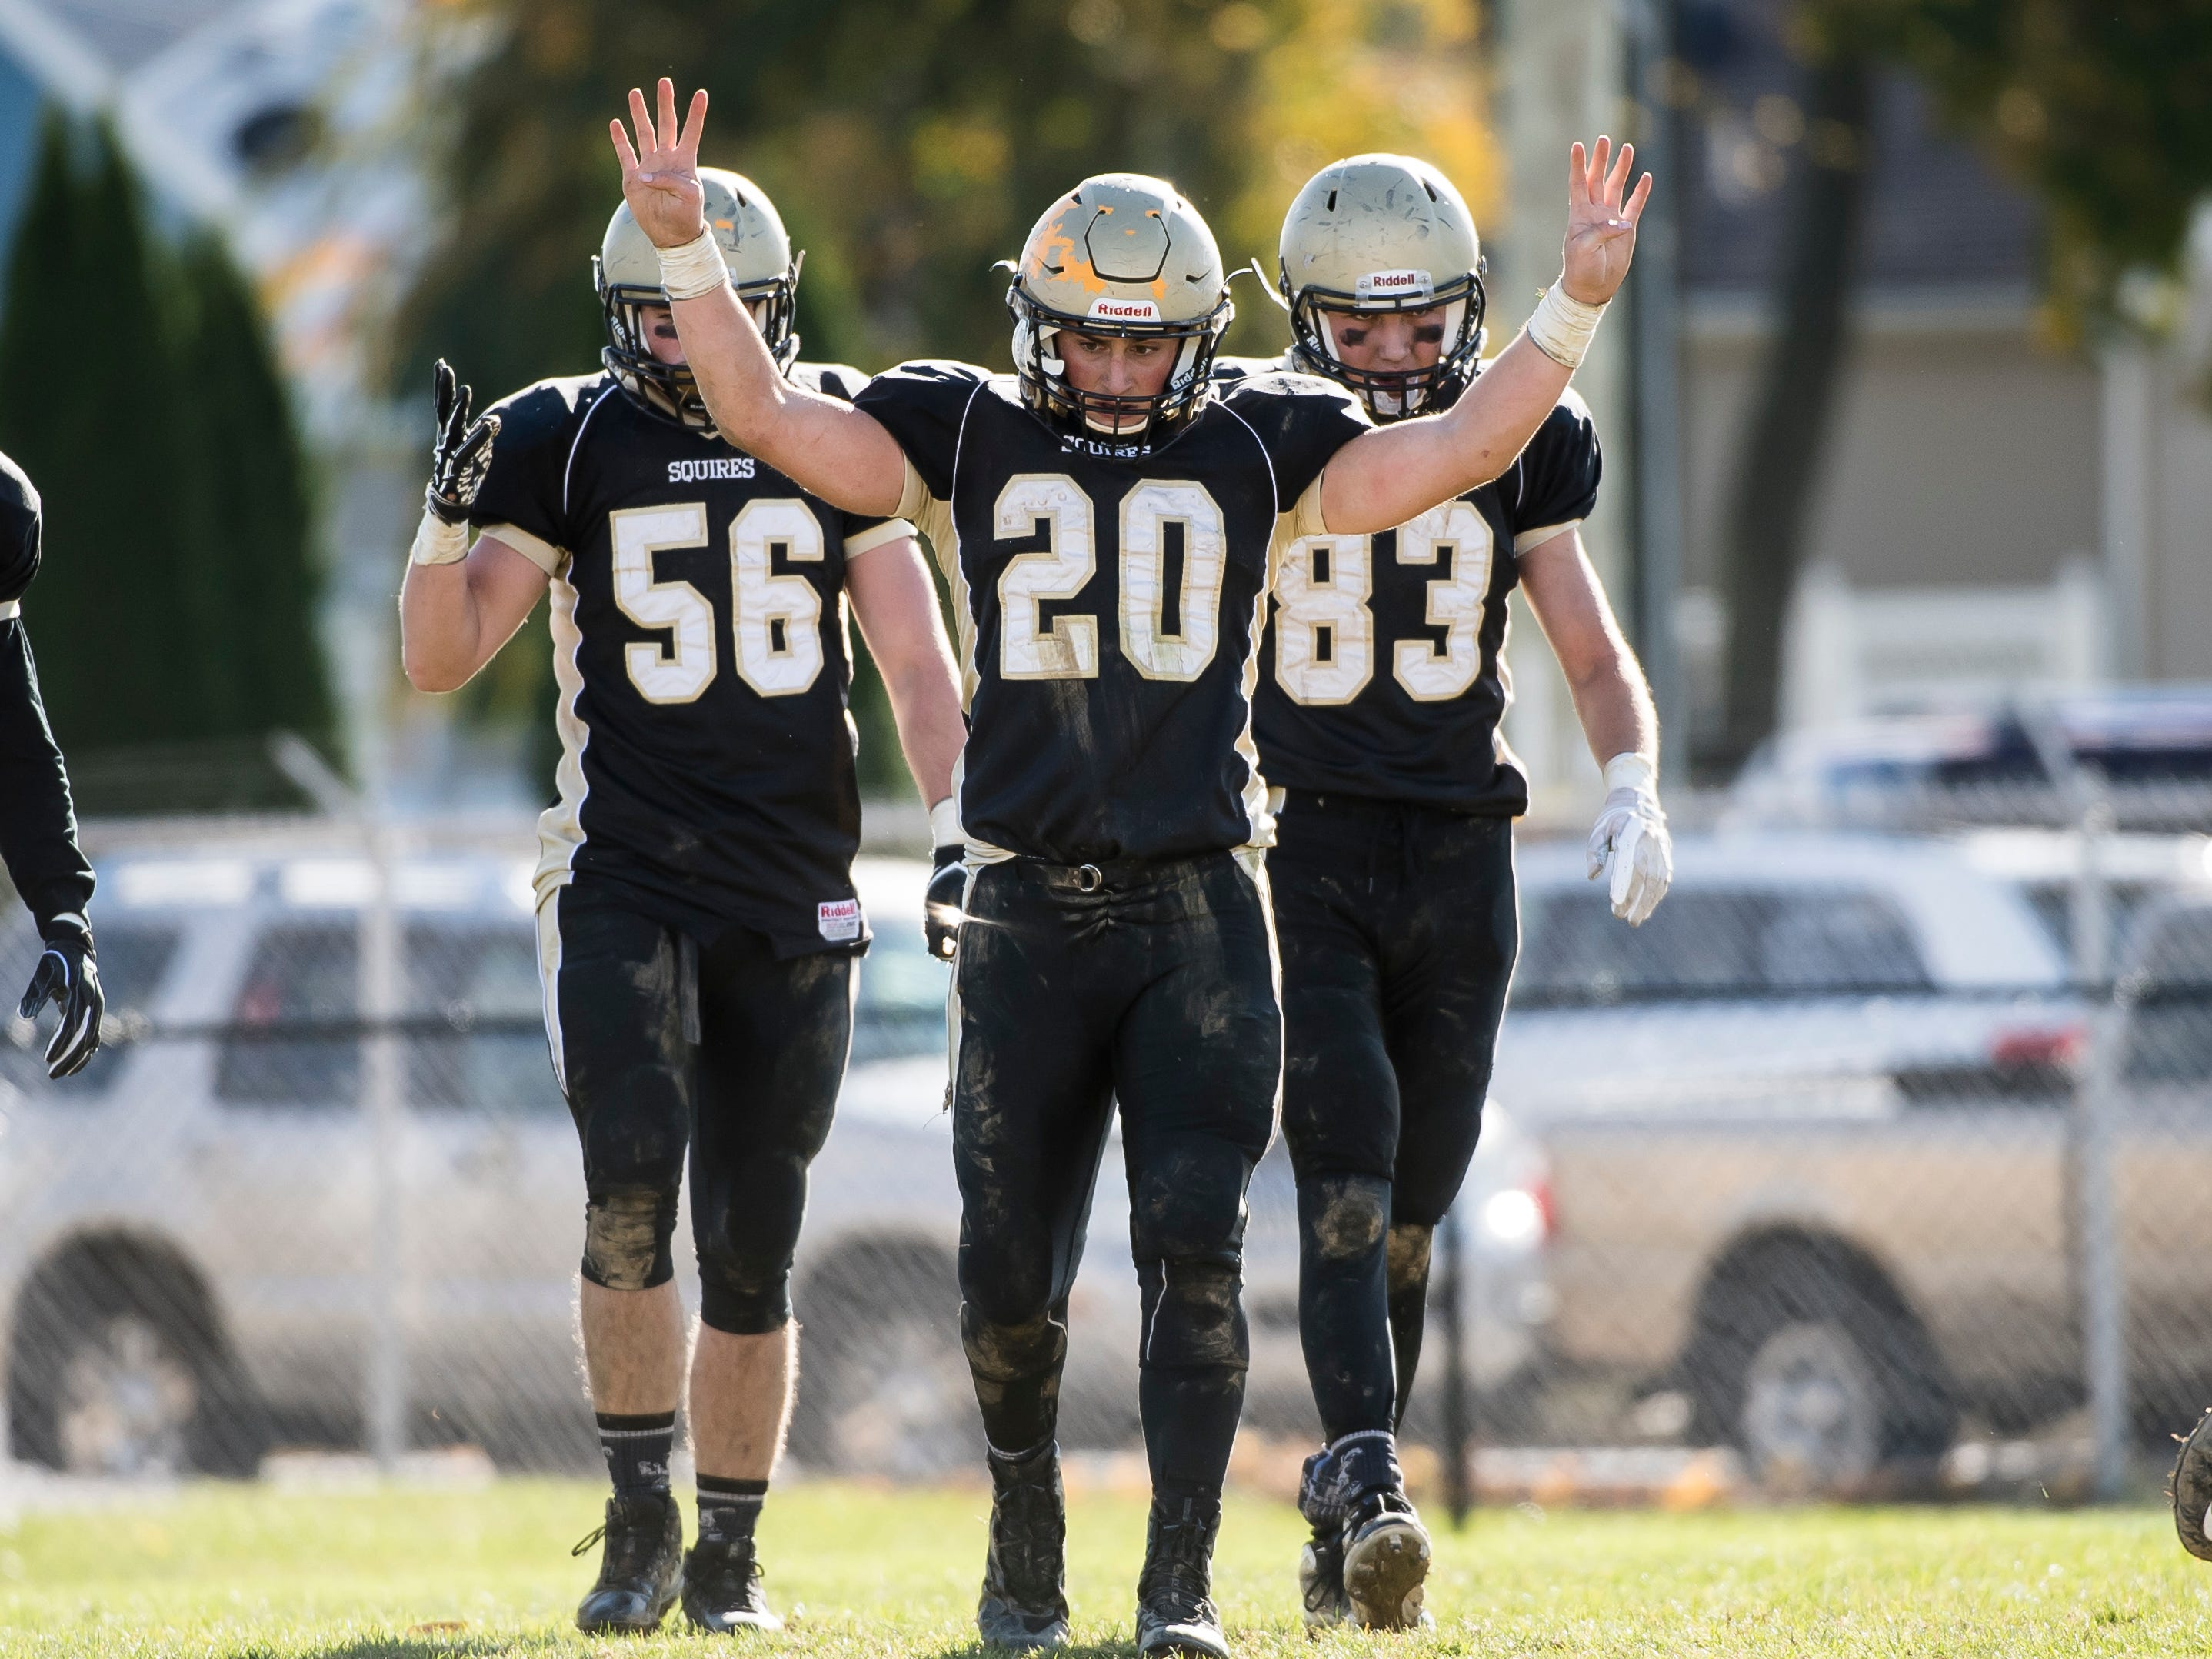 Delone Catholic's Tyler Monto (20) holds up four fingers to signify the start of the fourth quarter during a District III Class 2A semifinal game against Upper Dauphin on Saturday, November 3, 2018. The Squires won 48-23.